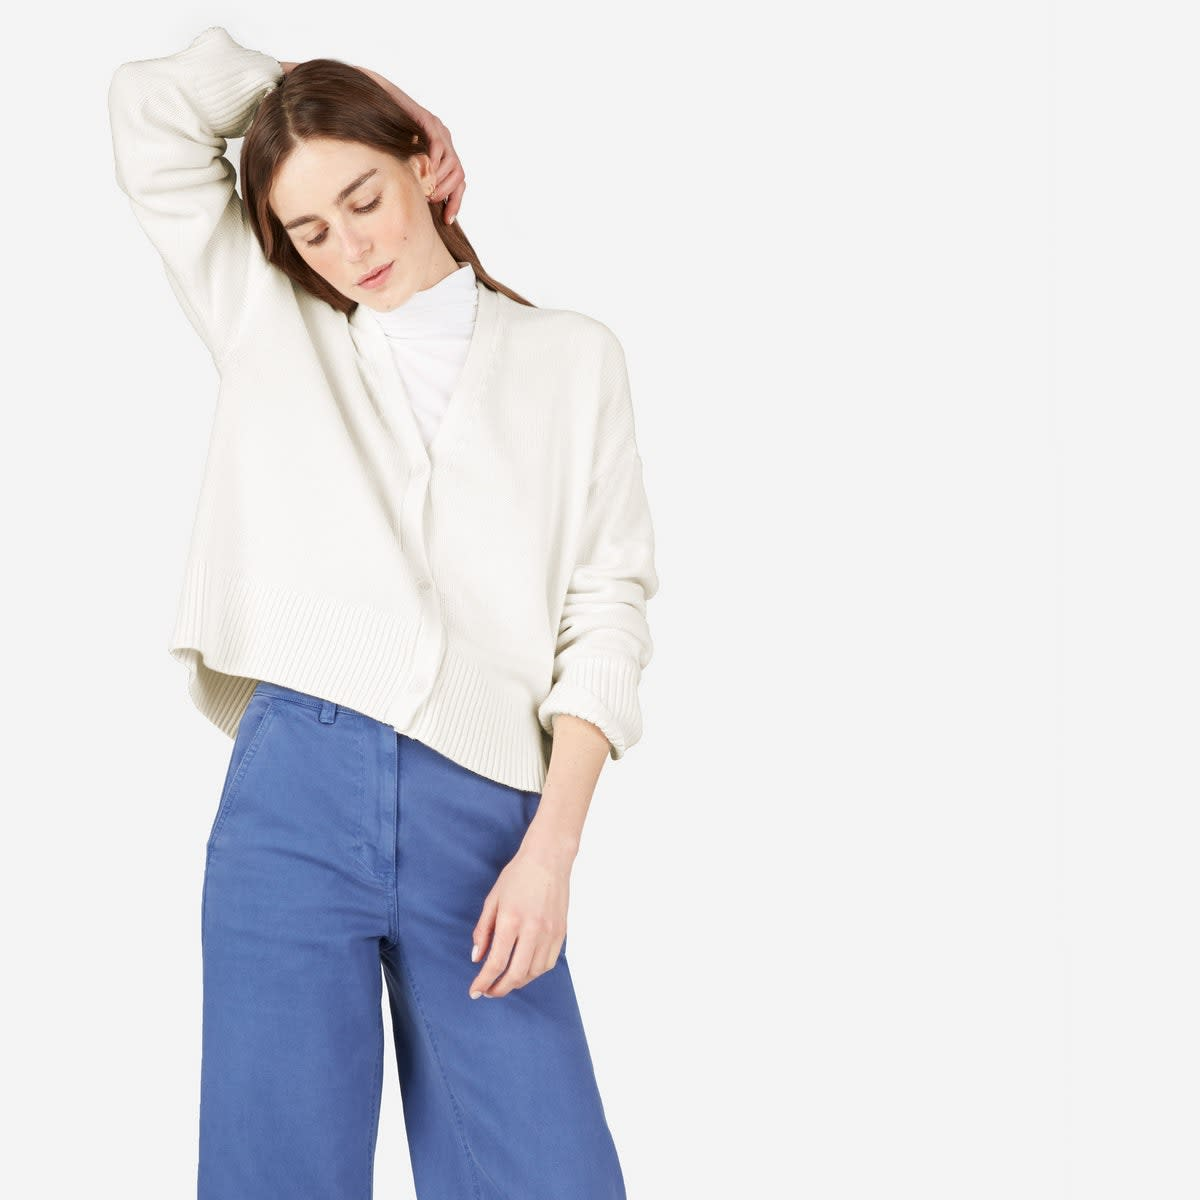 Soft Cotton Square Cardigan, $88, available at Everlane.